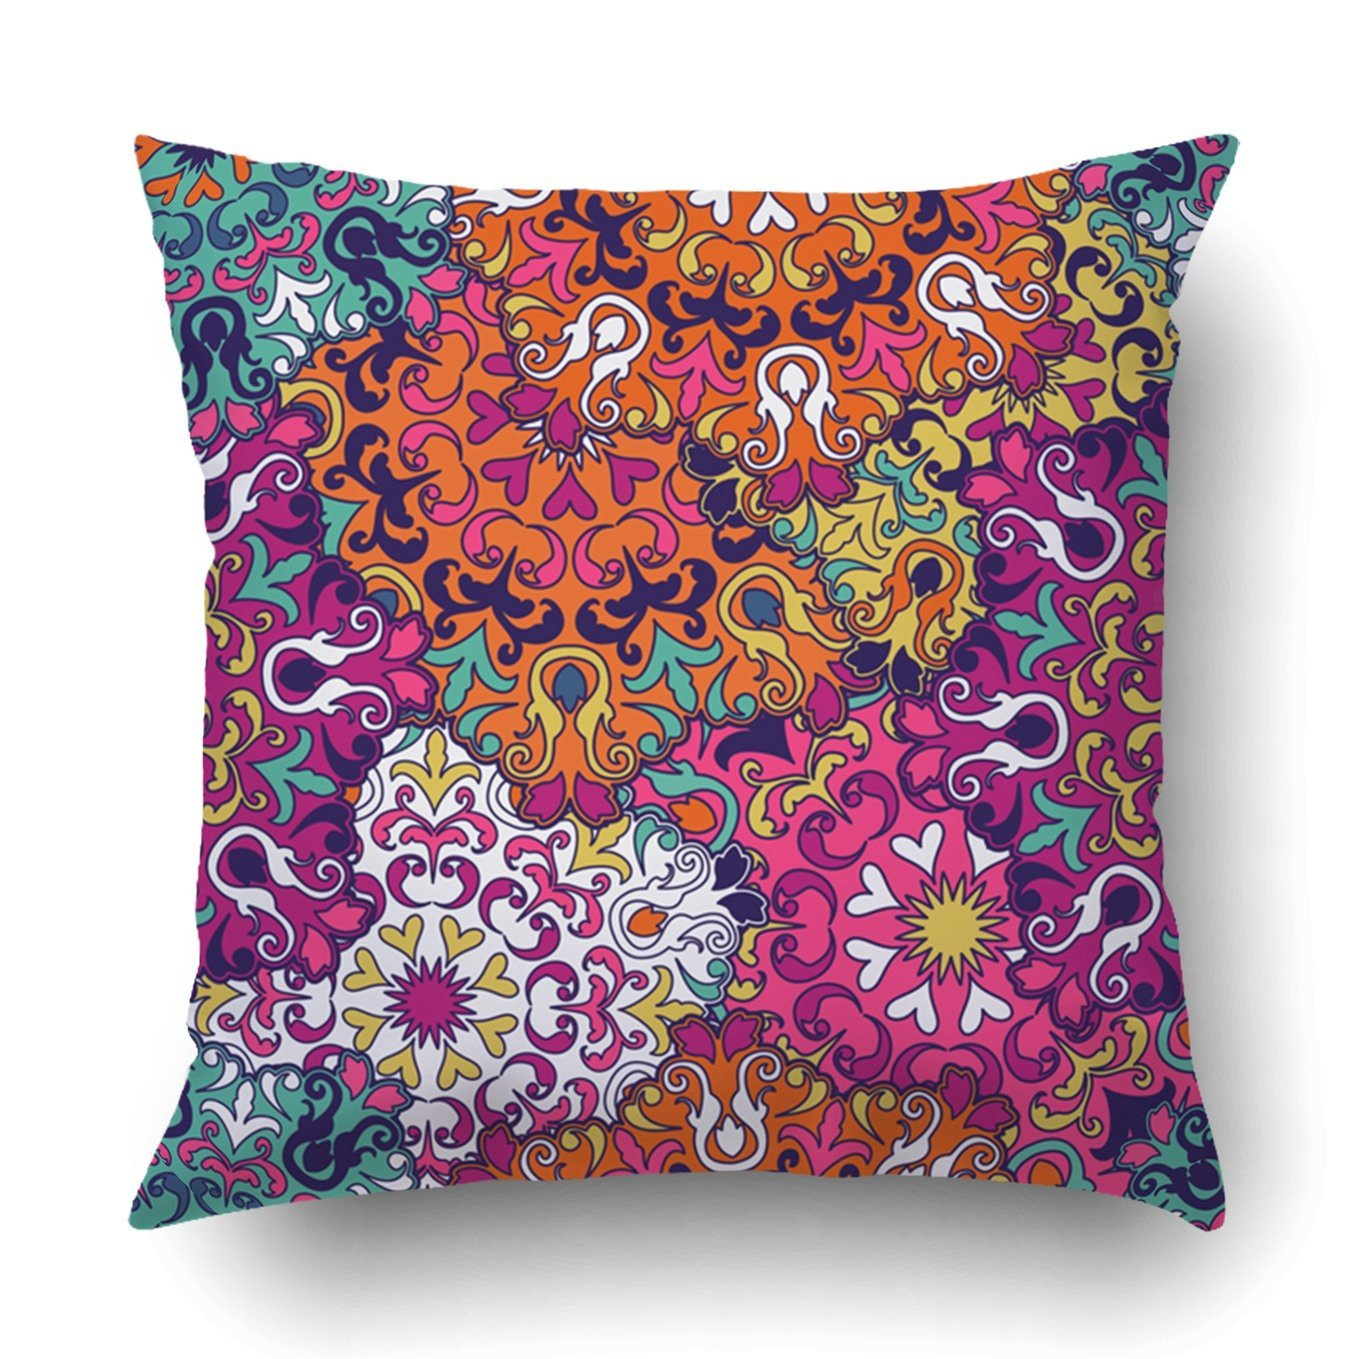 Emvency Decorative Throw Pillow Cover Case for Bedroom Couch Sofa Home Decor Oriental pattern Islam Arabic Indian Turkish Pakistan Chinese Moroccan Ottoman Square 20x20 Inches Moroccan